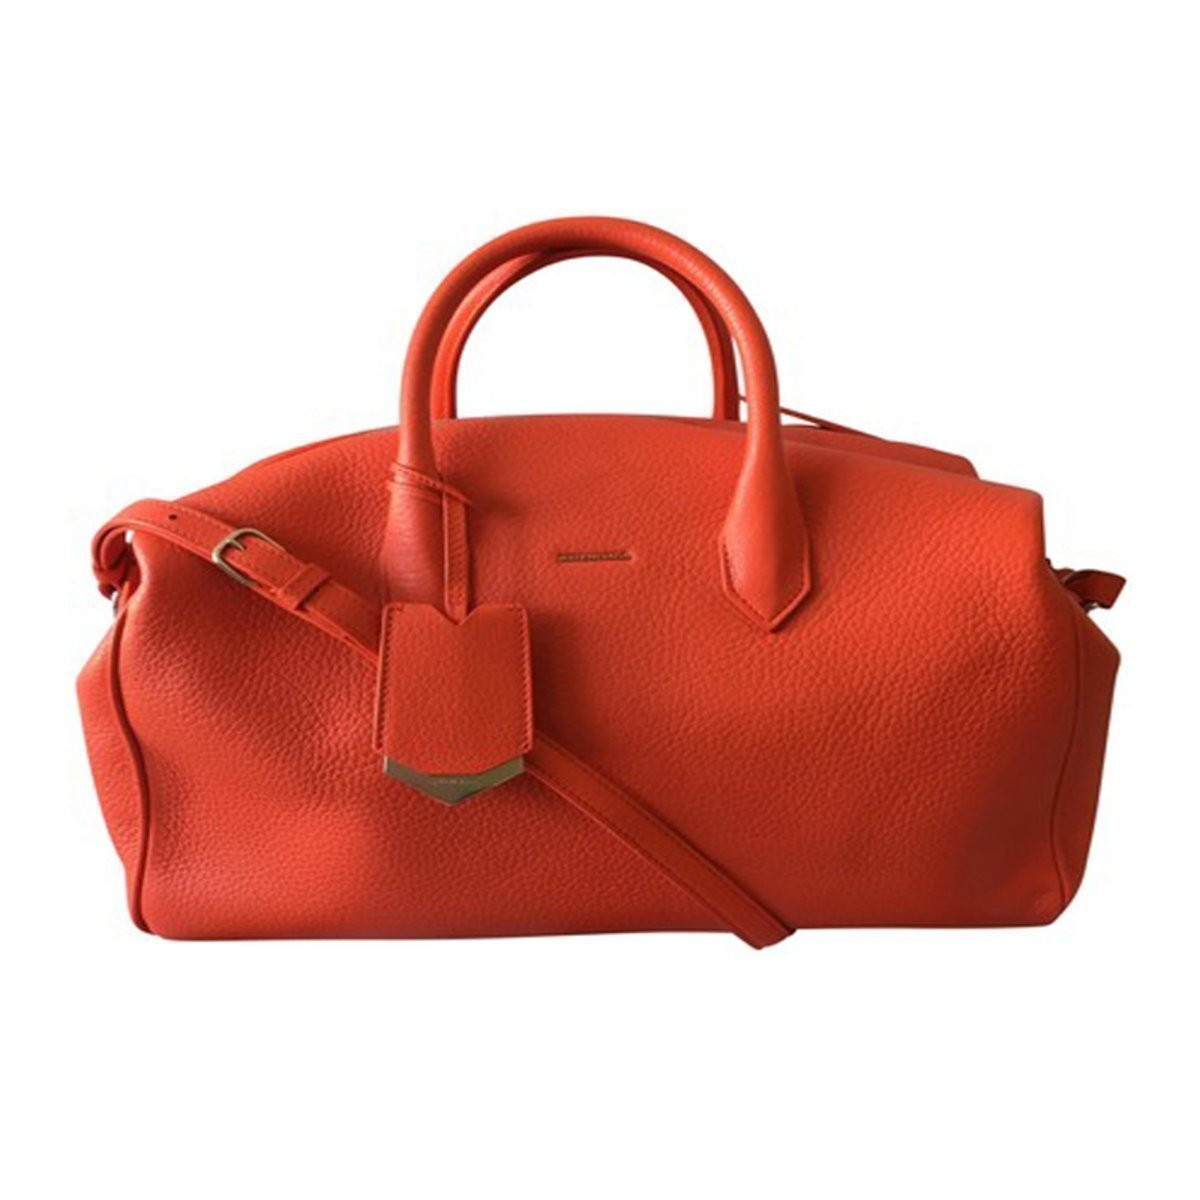 Balenciaga Classic Women's Rouge Leather Coquelicot Satchel Bag 390921